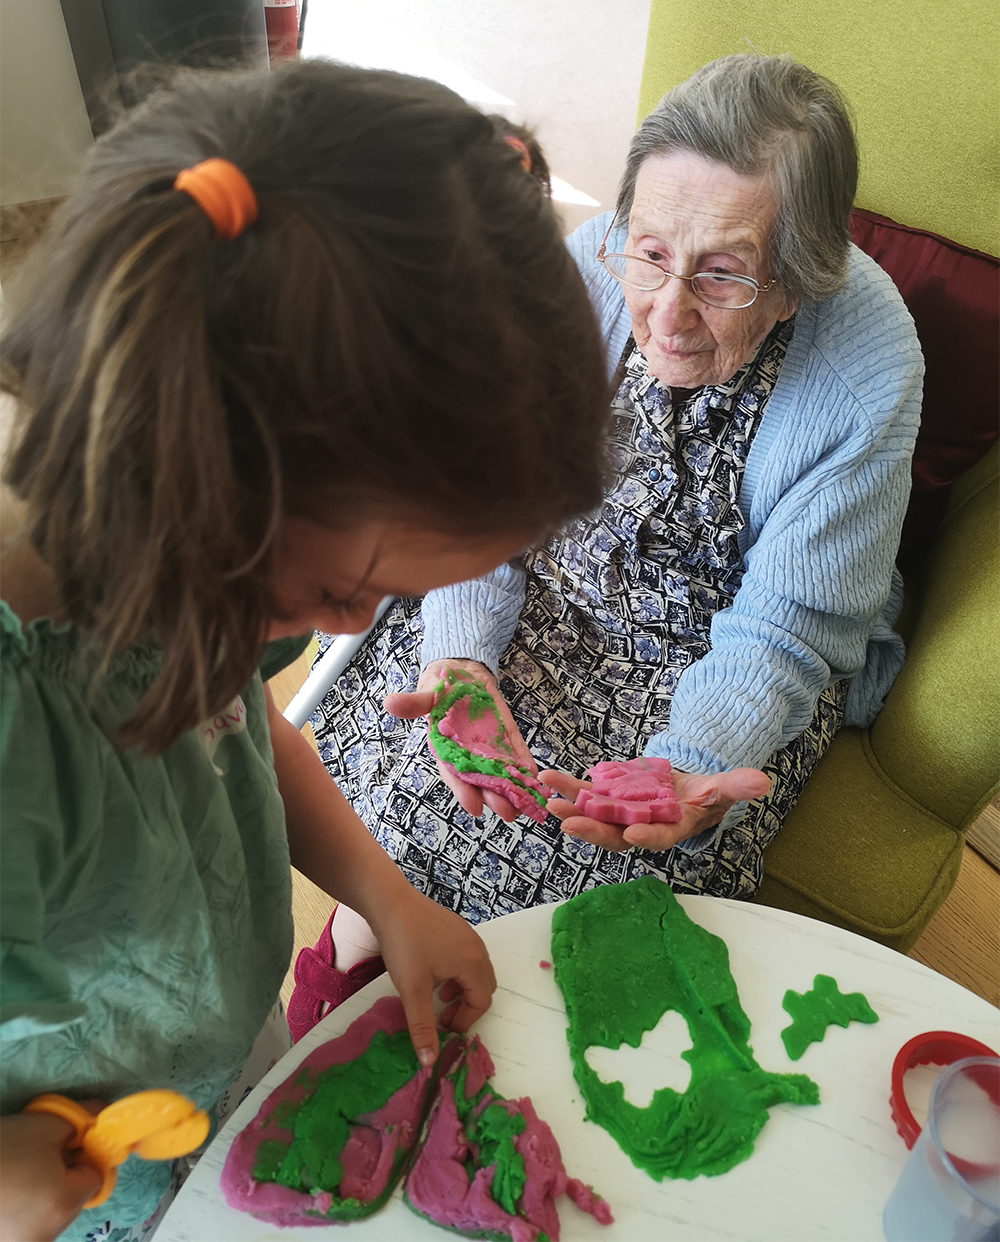 playdoh with old lady